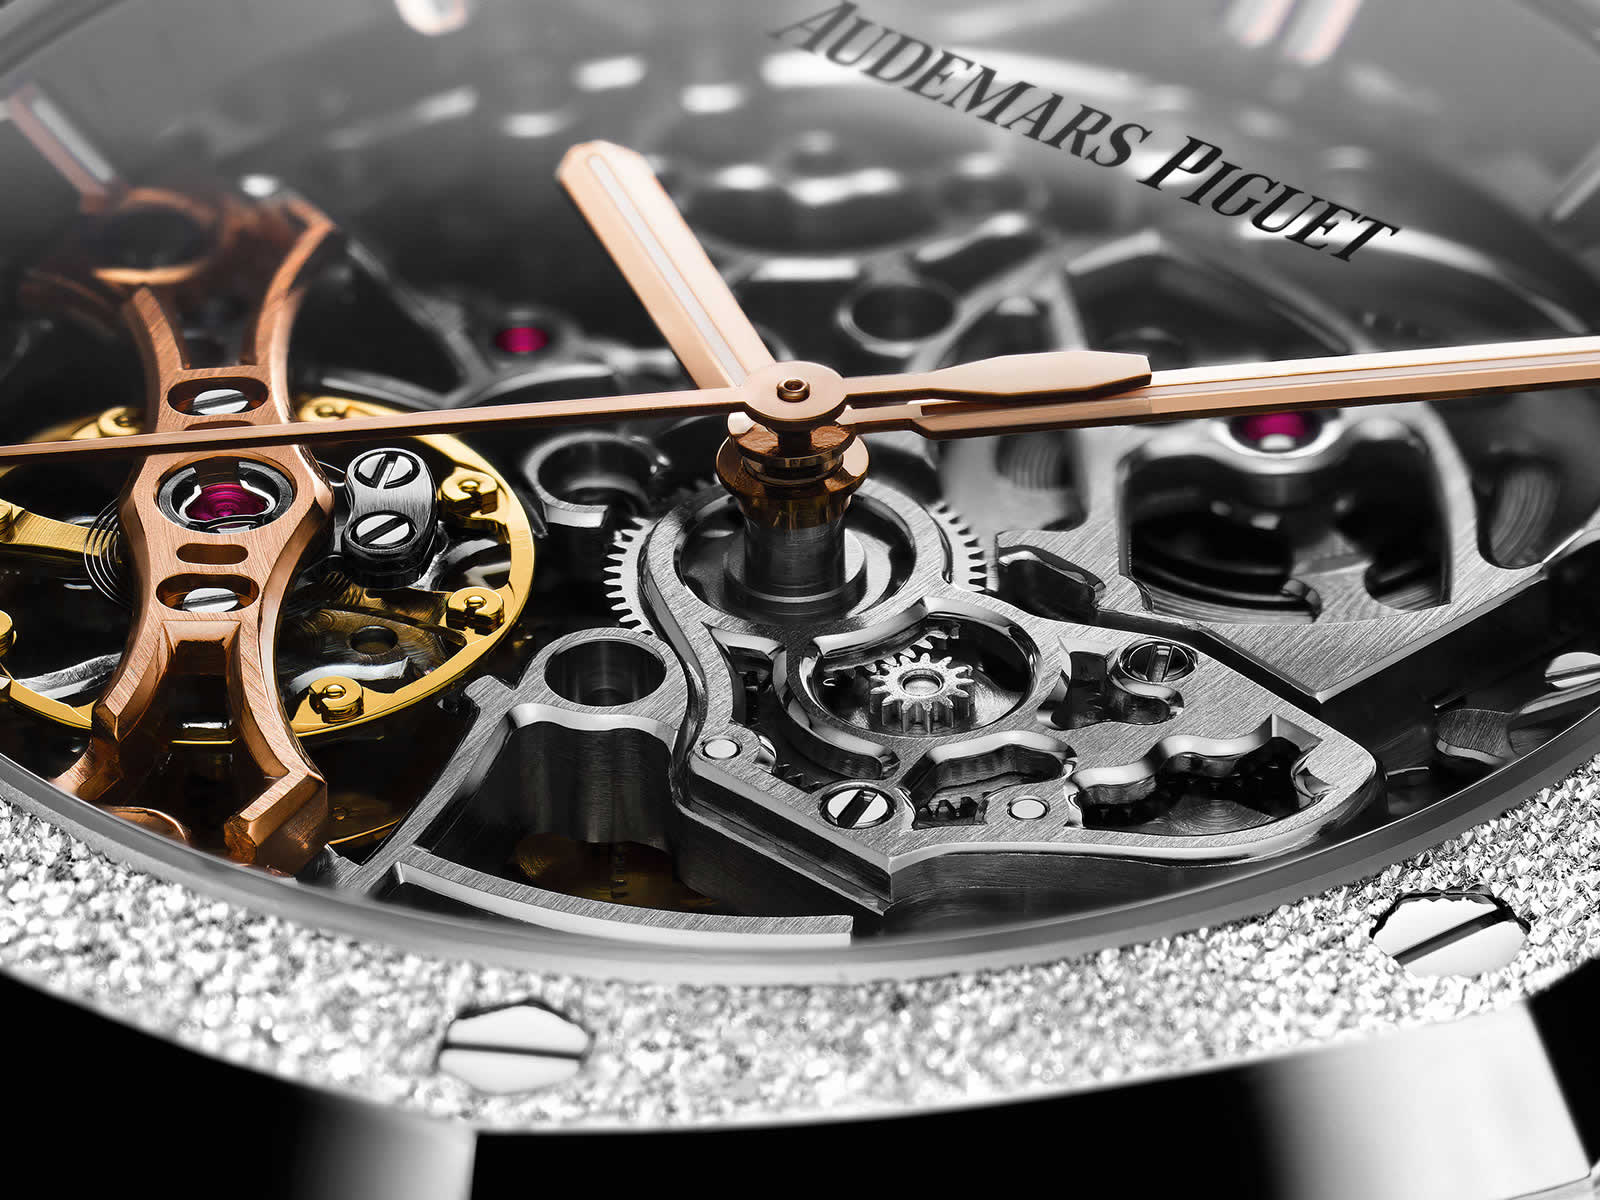 Audemars-Piguet-Royal-Oak-Double-Balance-Wheel-Openworked-15466BC-GG-1259BC-01-2-Closeup-Original-Sihh2018.jpg